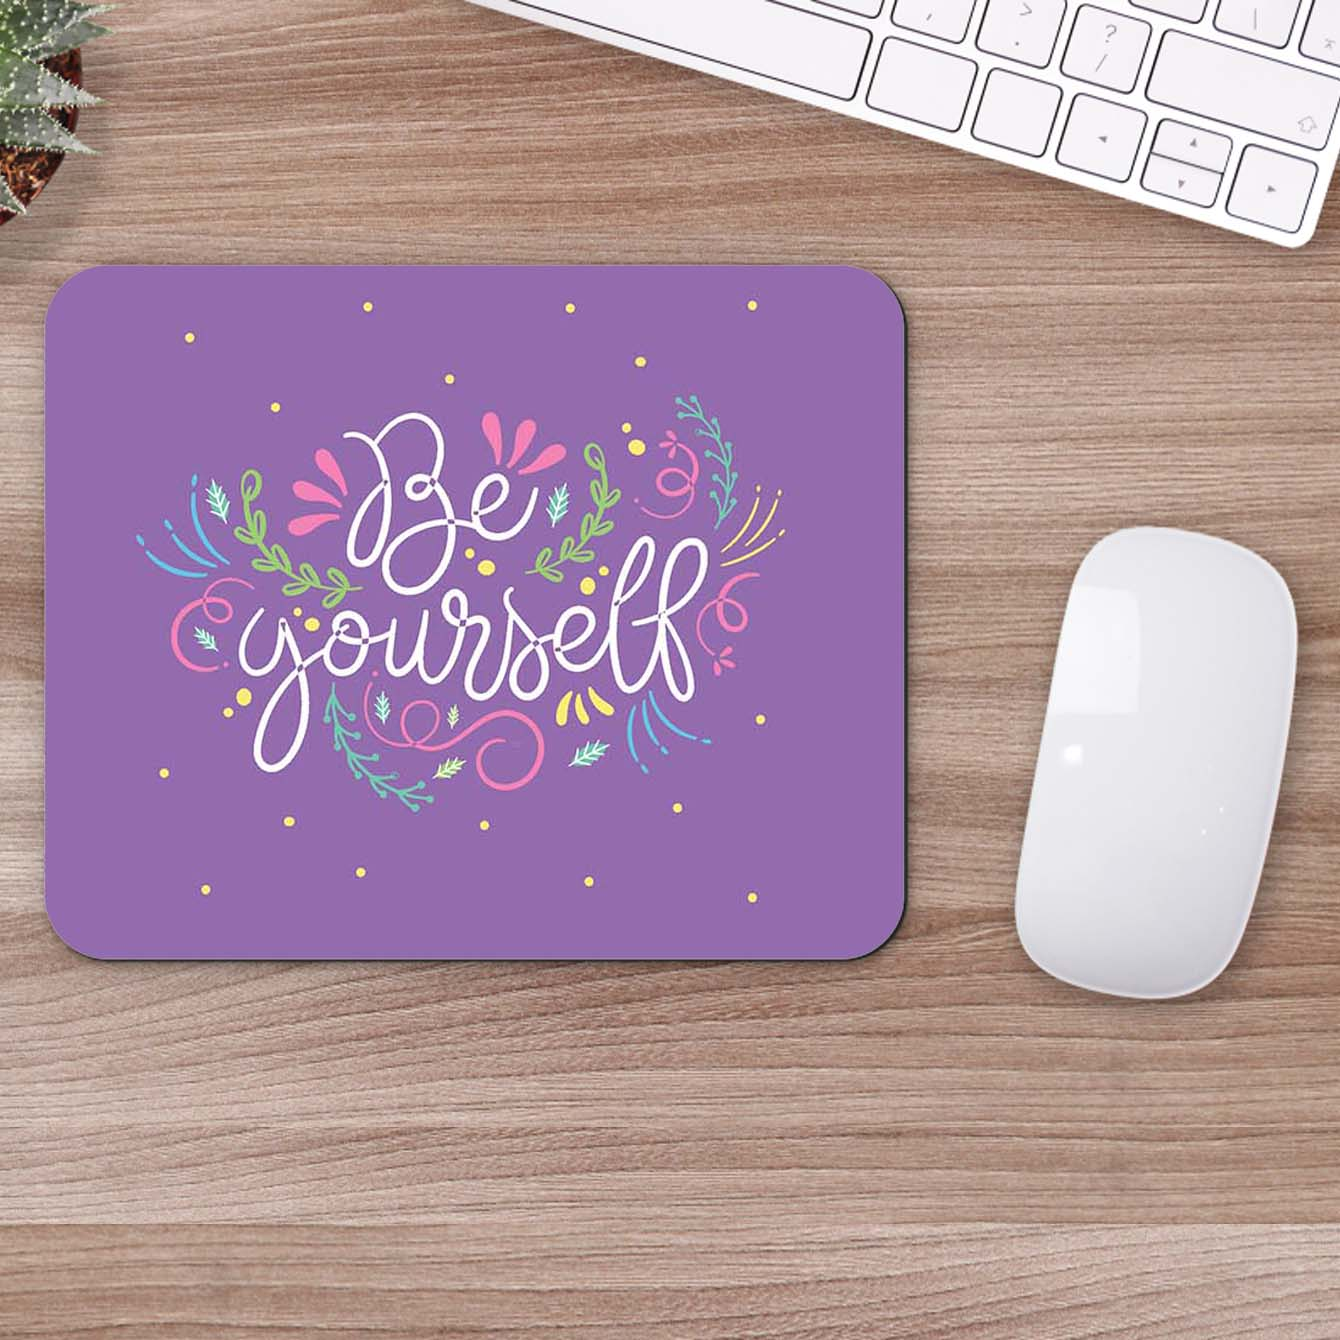 Buy Be Your Self Motivational Mouse Pads Online